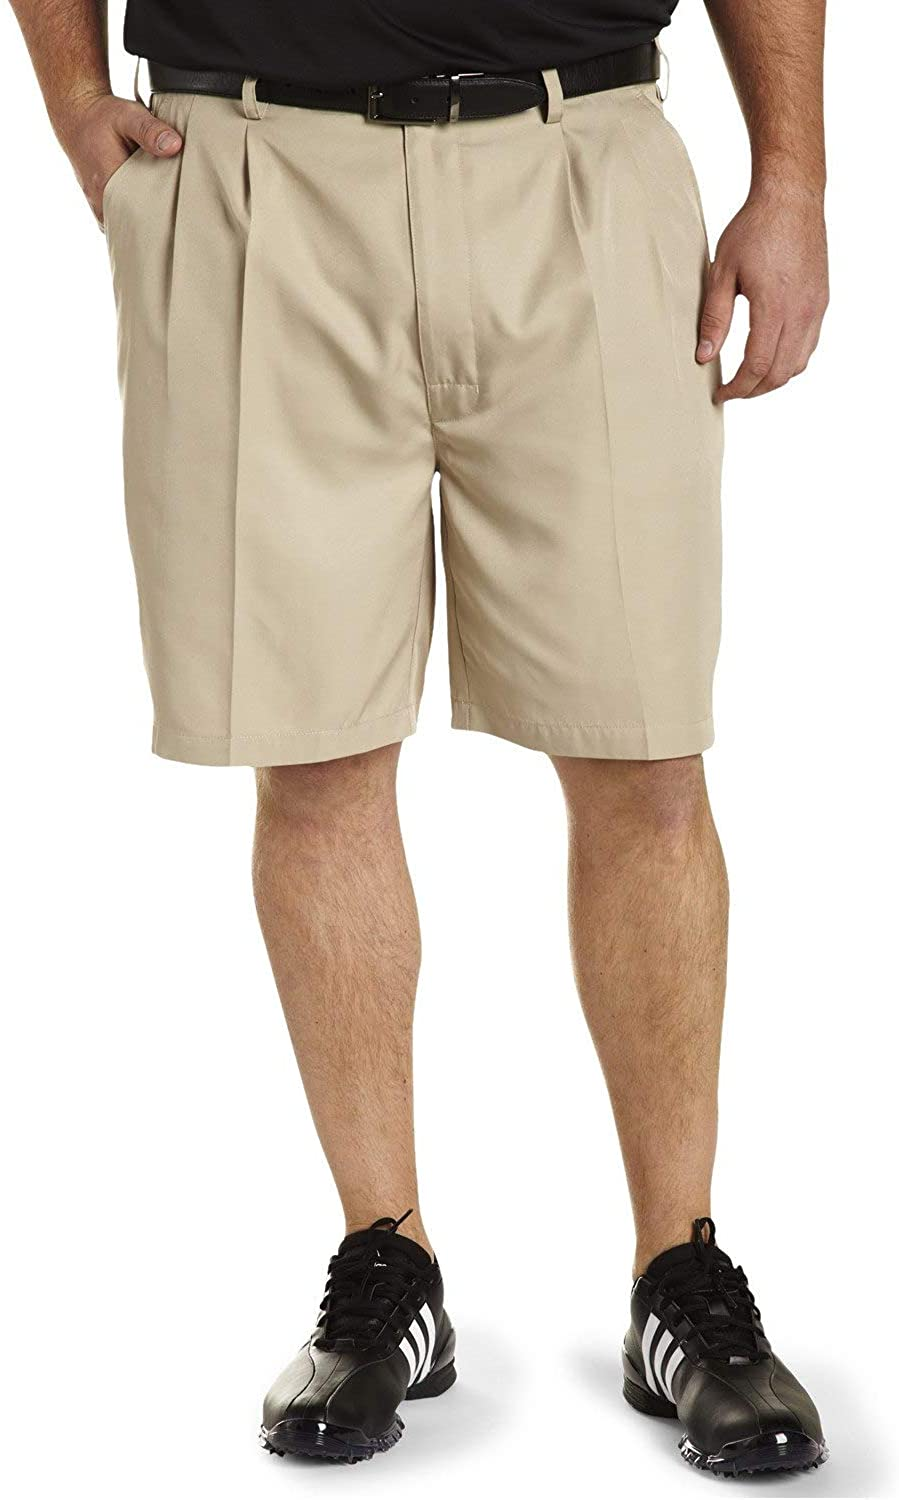 Reebok Big and Tall Golf Play Dry Continuous Comfort Pleated Shorts Khaki